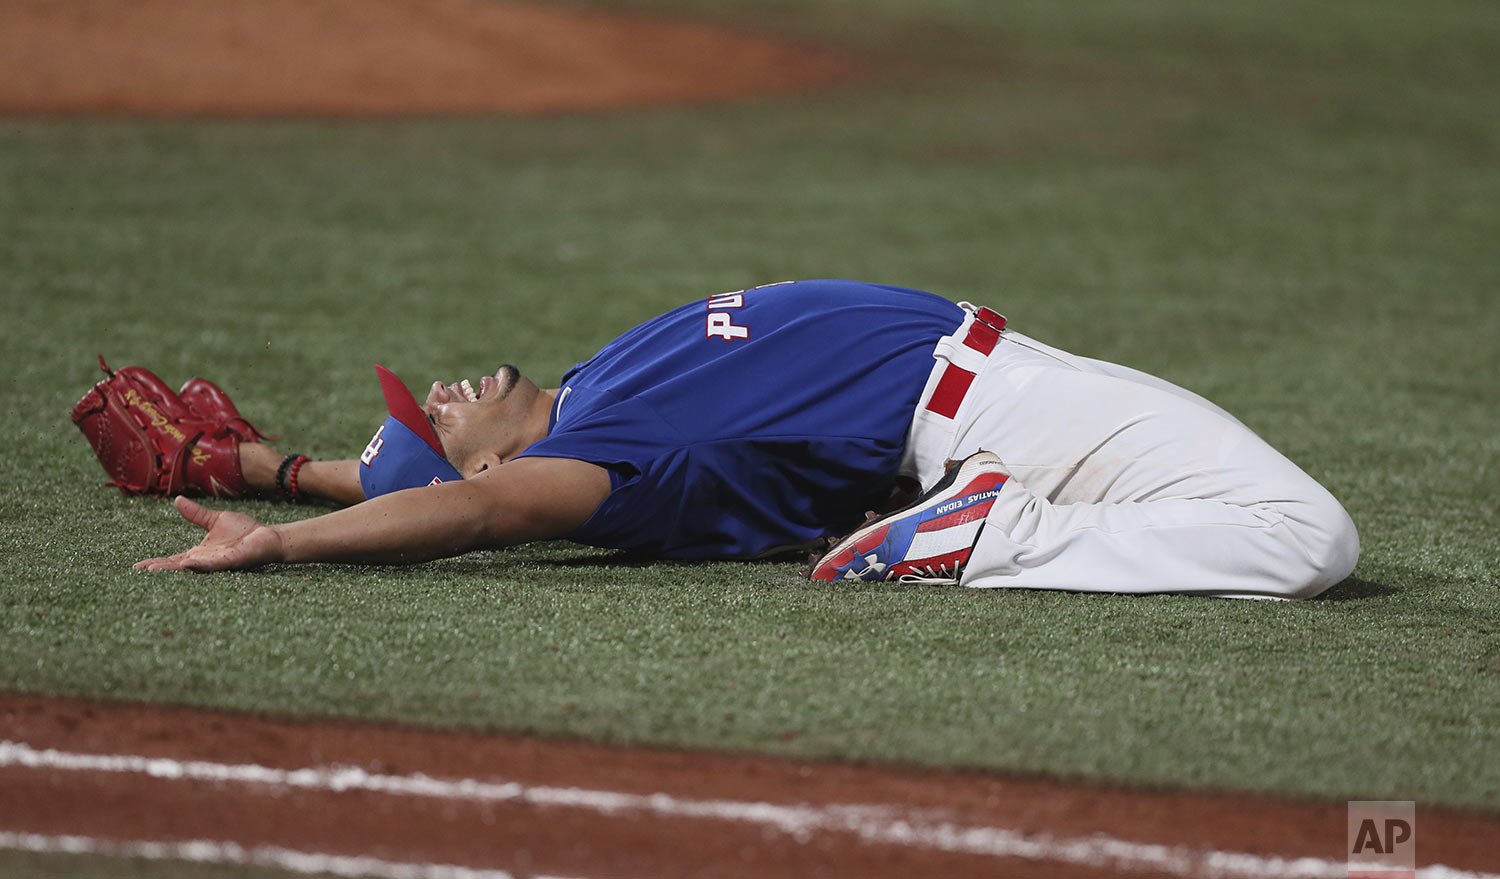 Puerto Rico's Fernando Cruz celebrates after saving the win against Canada in the men's baseball gold medal game at the Pan American Games in Lima, Peru, Sunday, Aug. 4, 2019. Puerto Rico won the gold medal. (AP Photo/Fernando Llano)